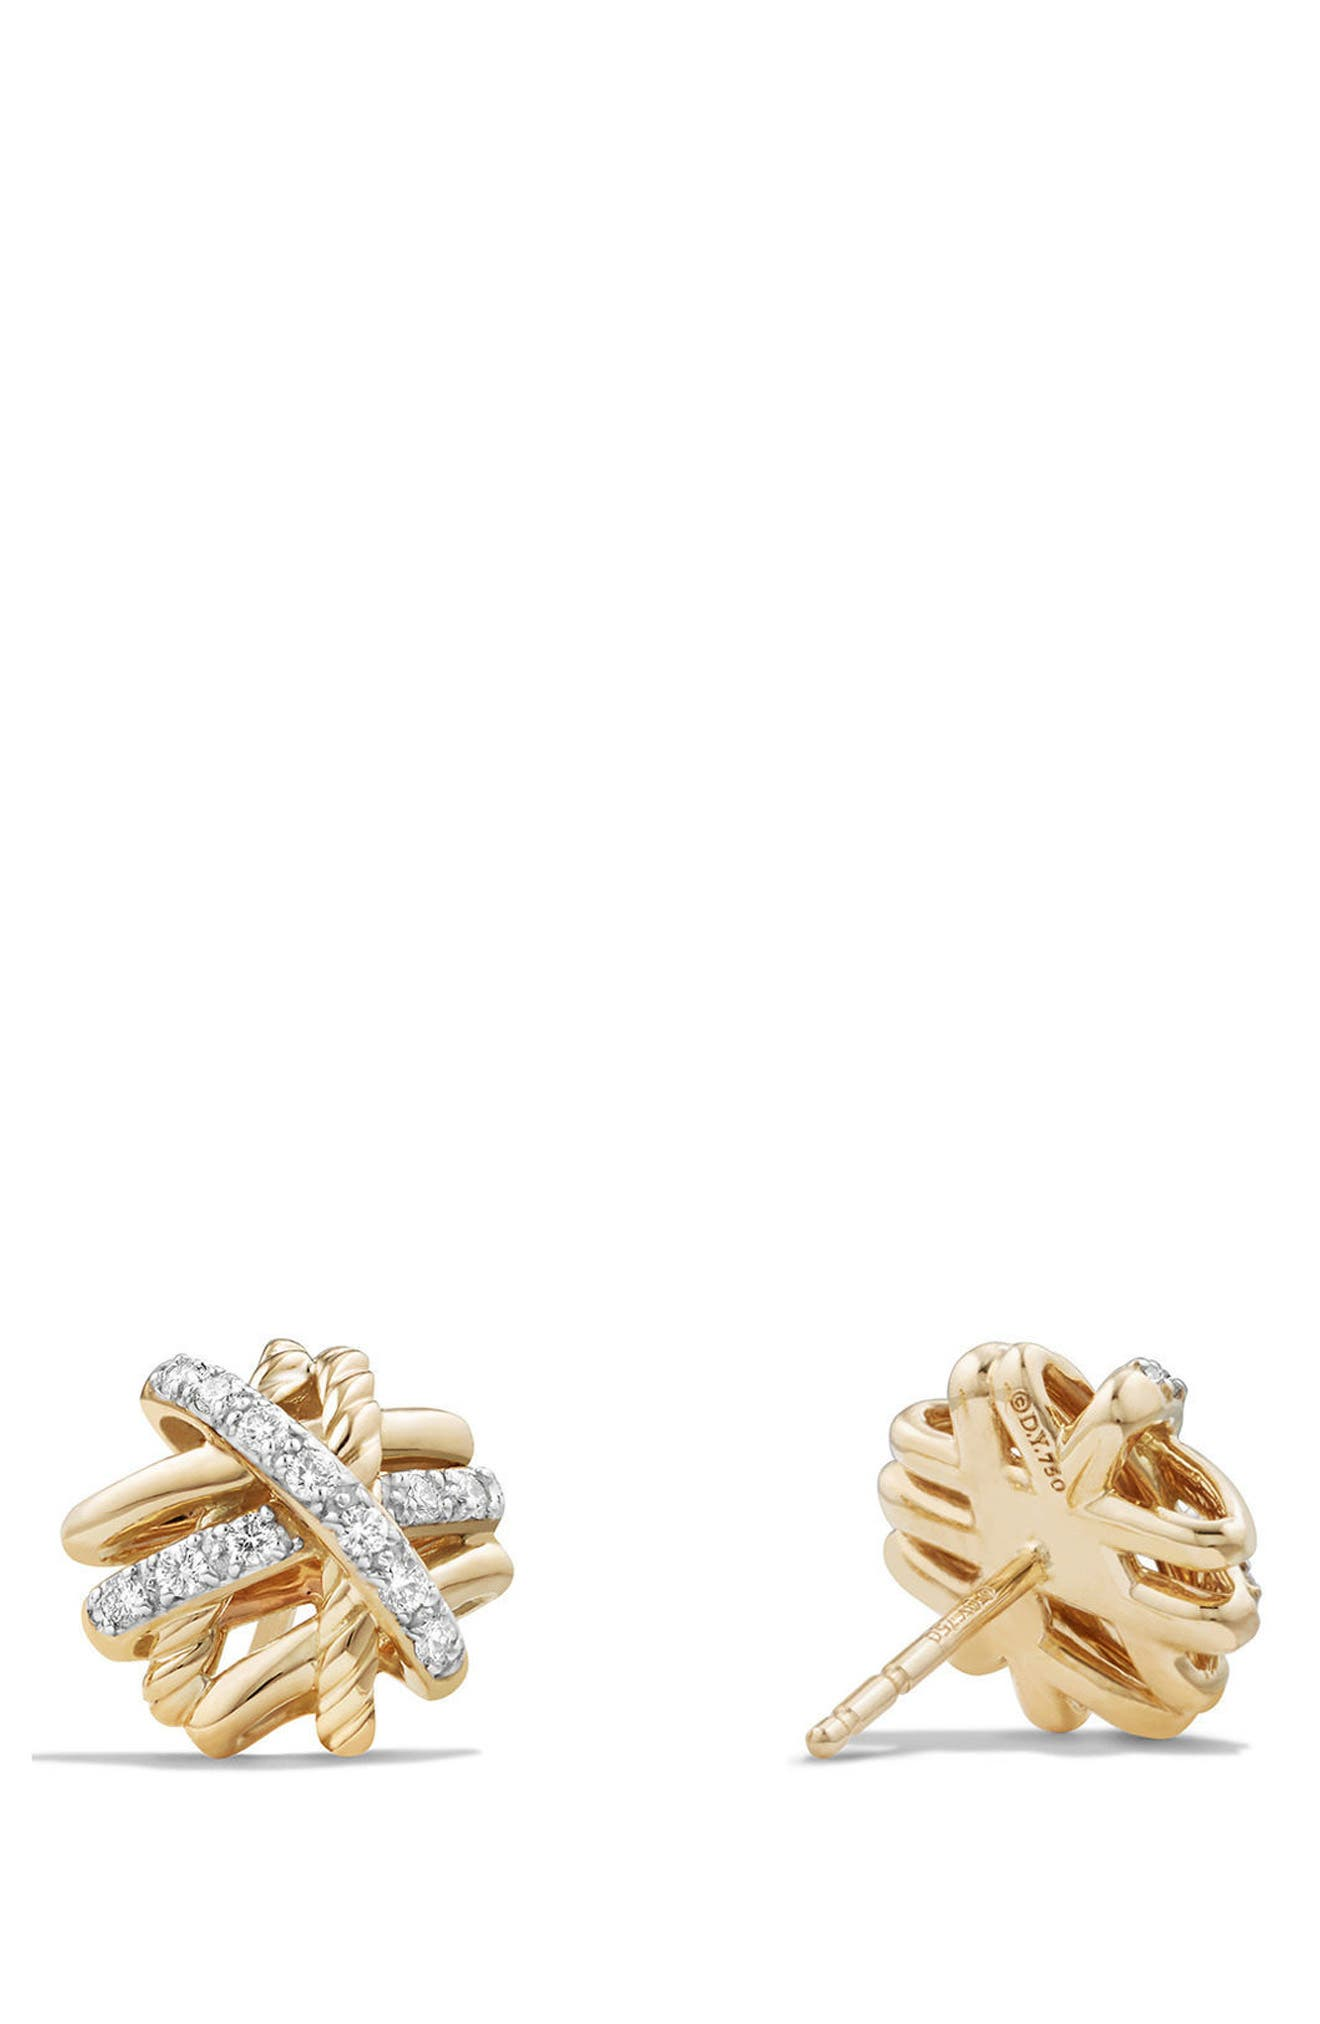 Crossover Stud Earrings with Diamonds in 18k Gold,                             Alternate thumbnail 2, color,                             YELLOW GOLD/ DIAMOND